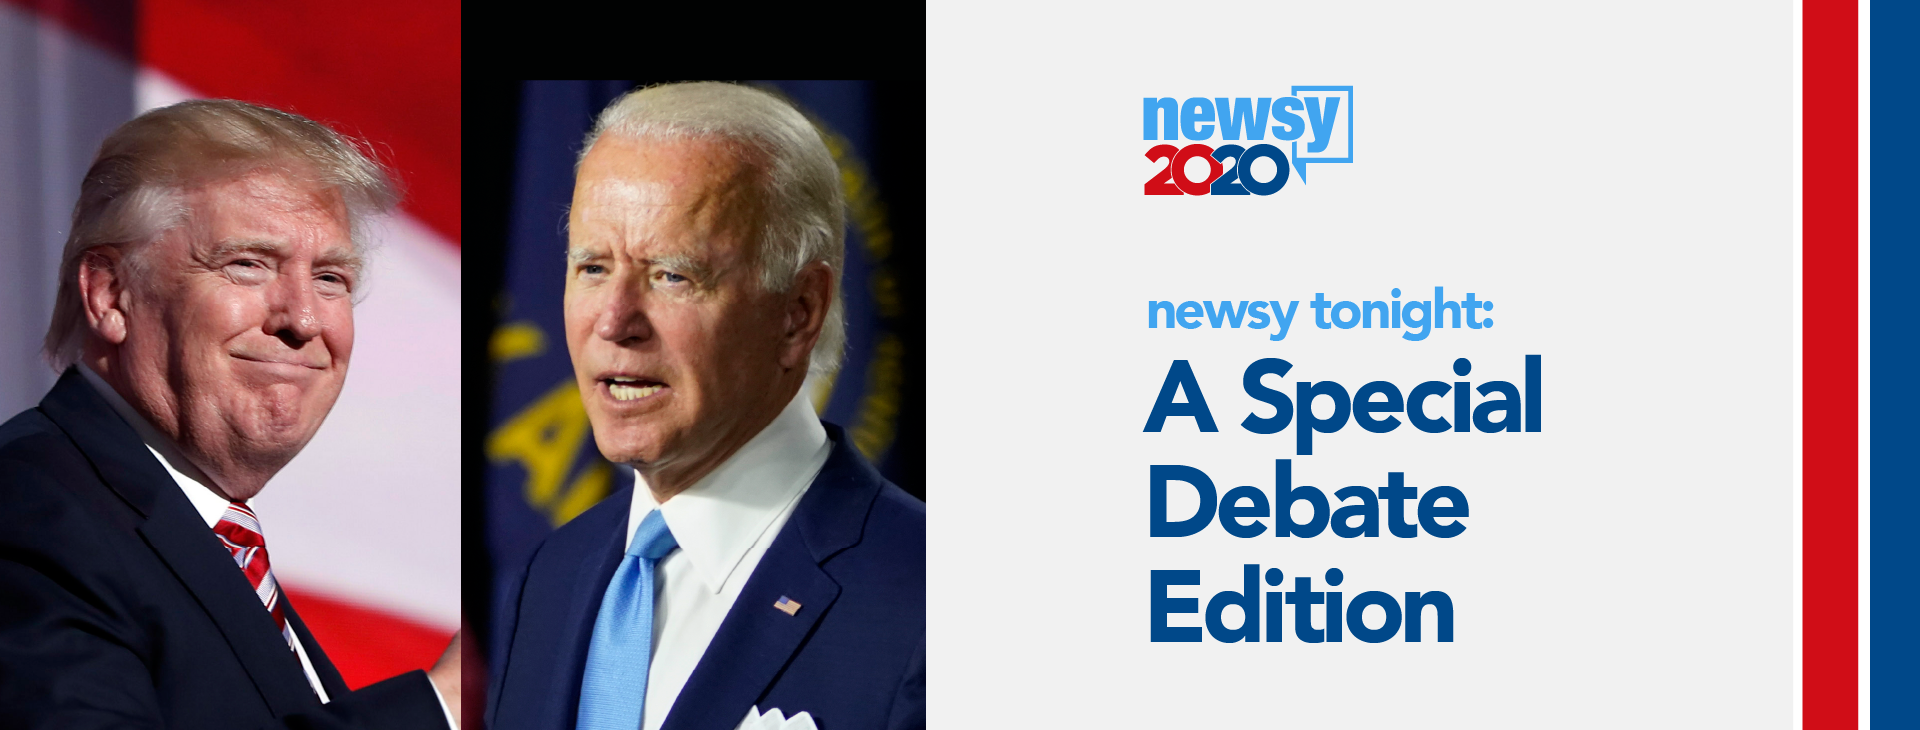 Newsy Tonight: A Special Debate Edition